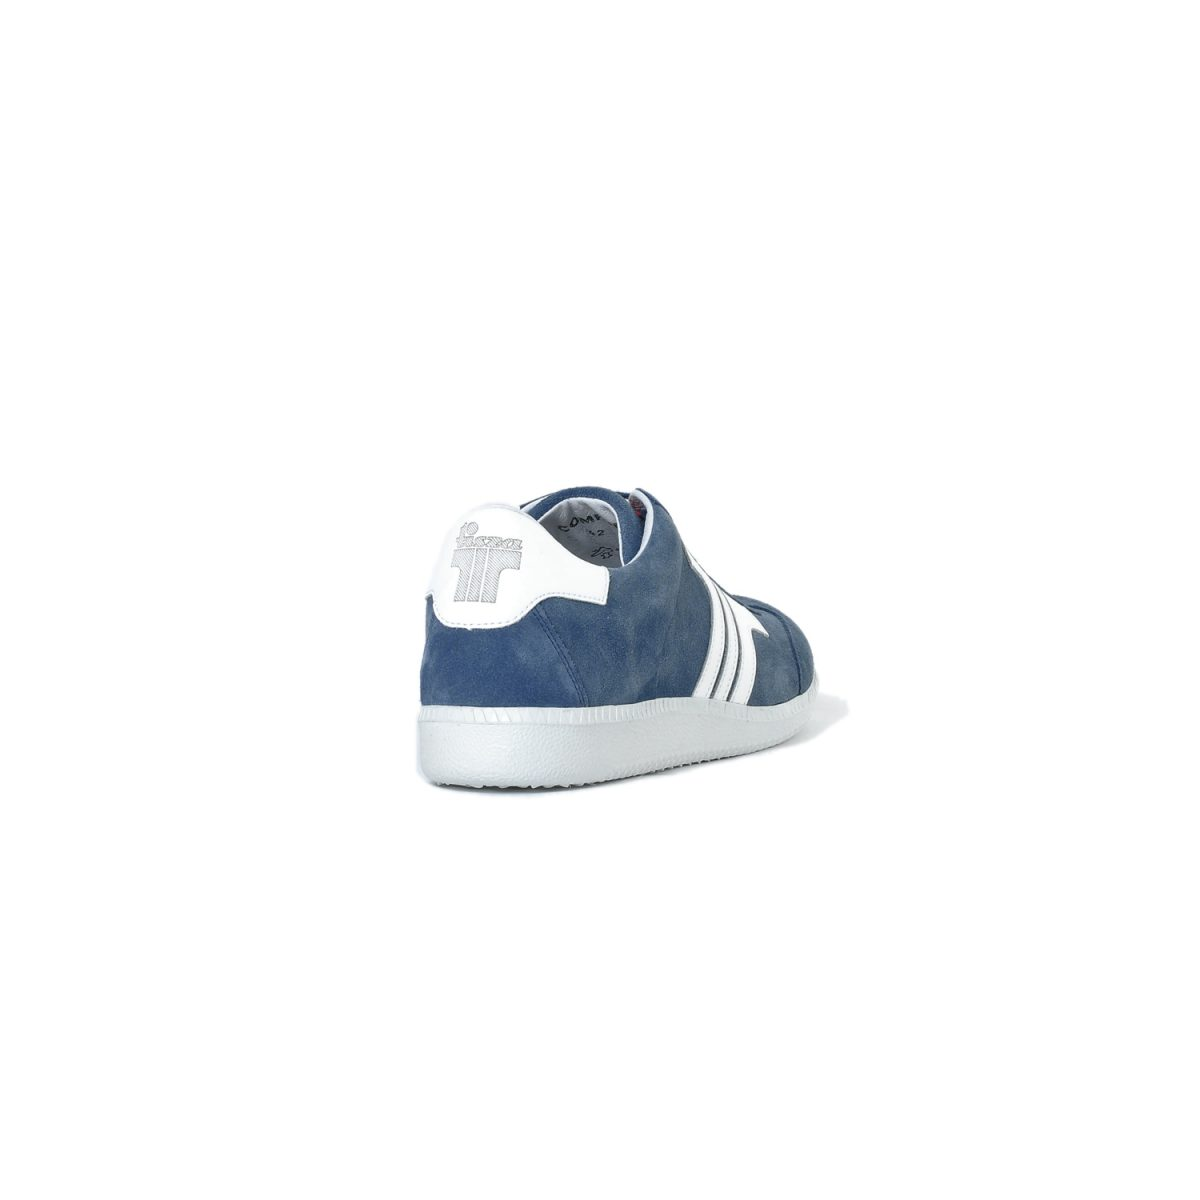 Tisza shoes - Comfort - Navy-white